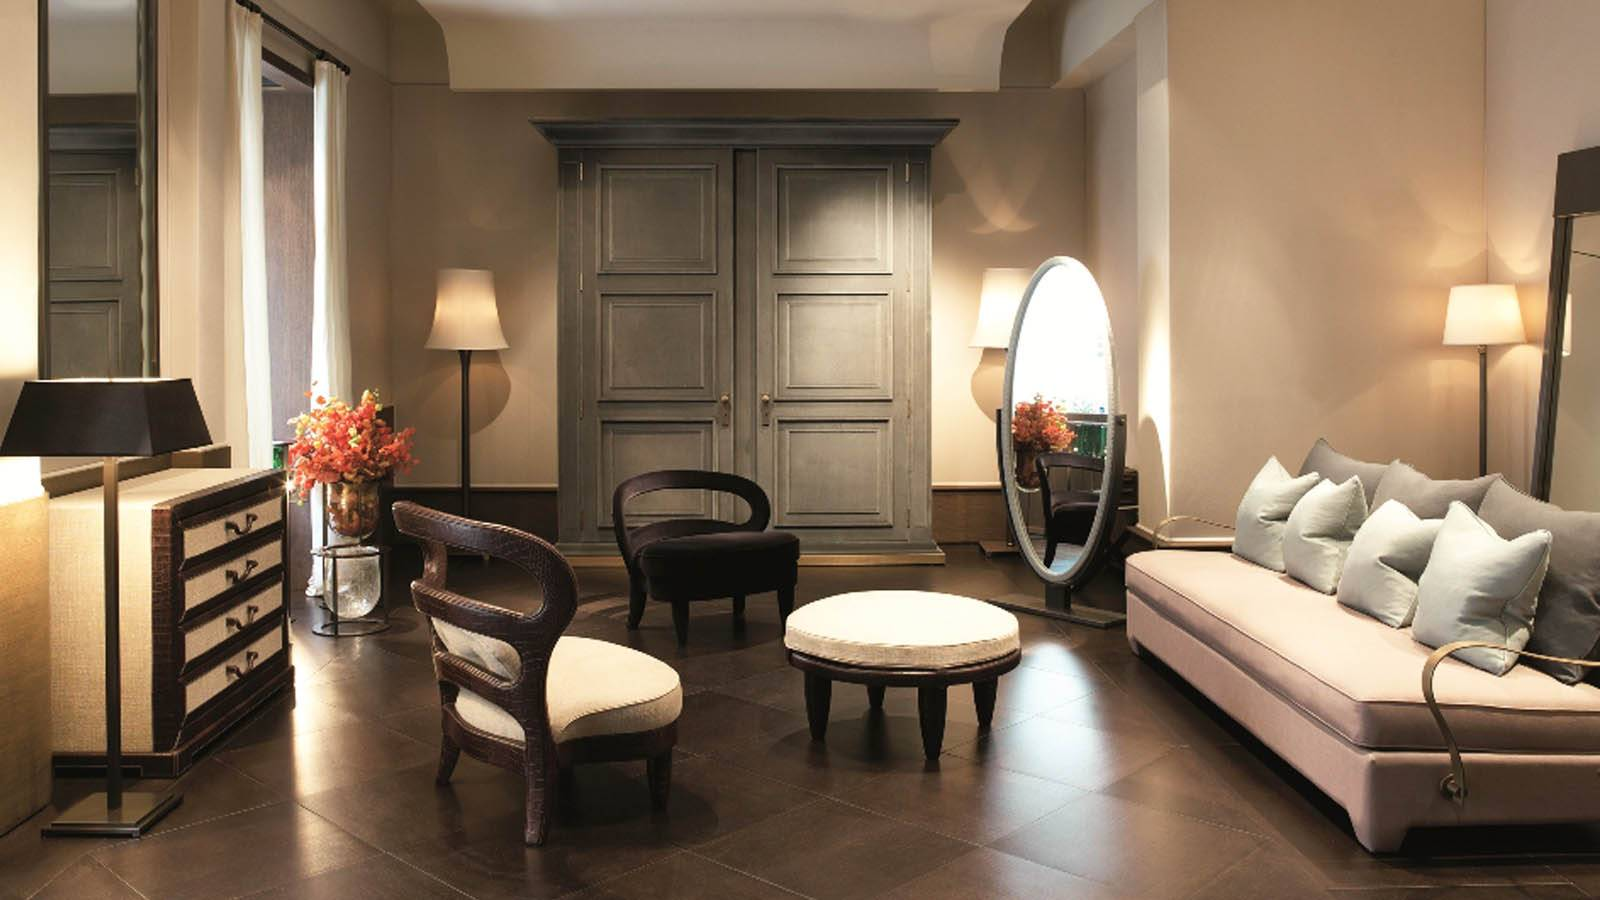 Promemoria Furniture: Interior of a living room